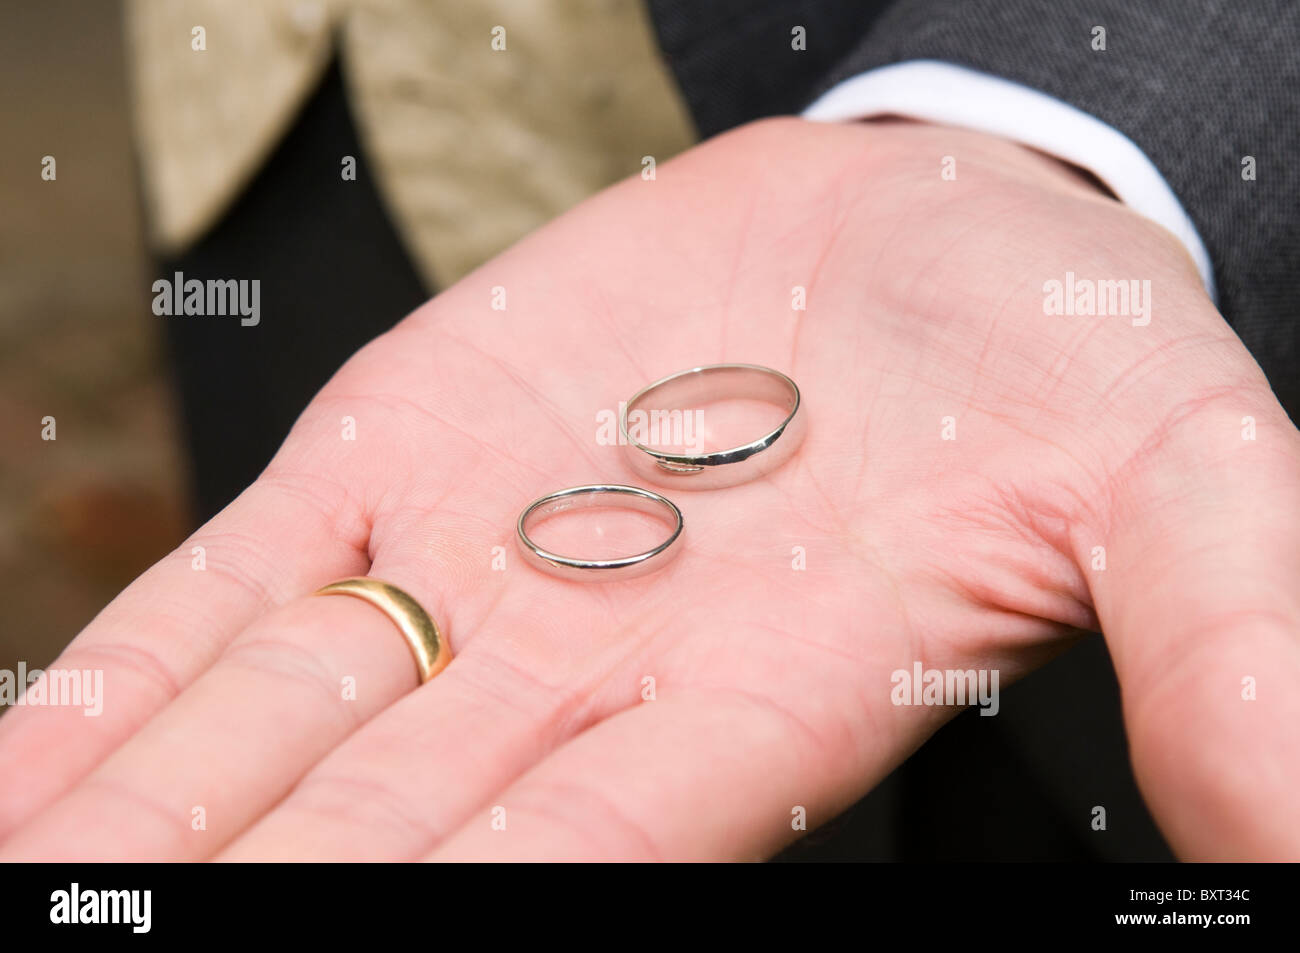 Best Man Holding Wedding Bands Stock Photos & Best Man Holding ...